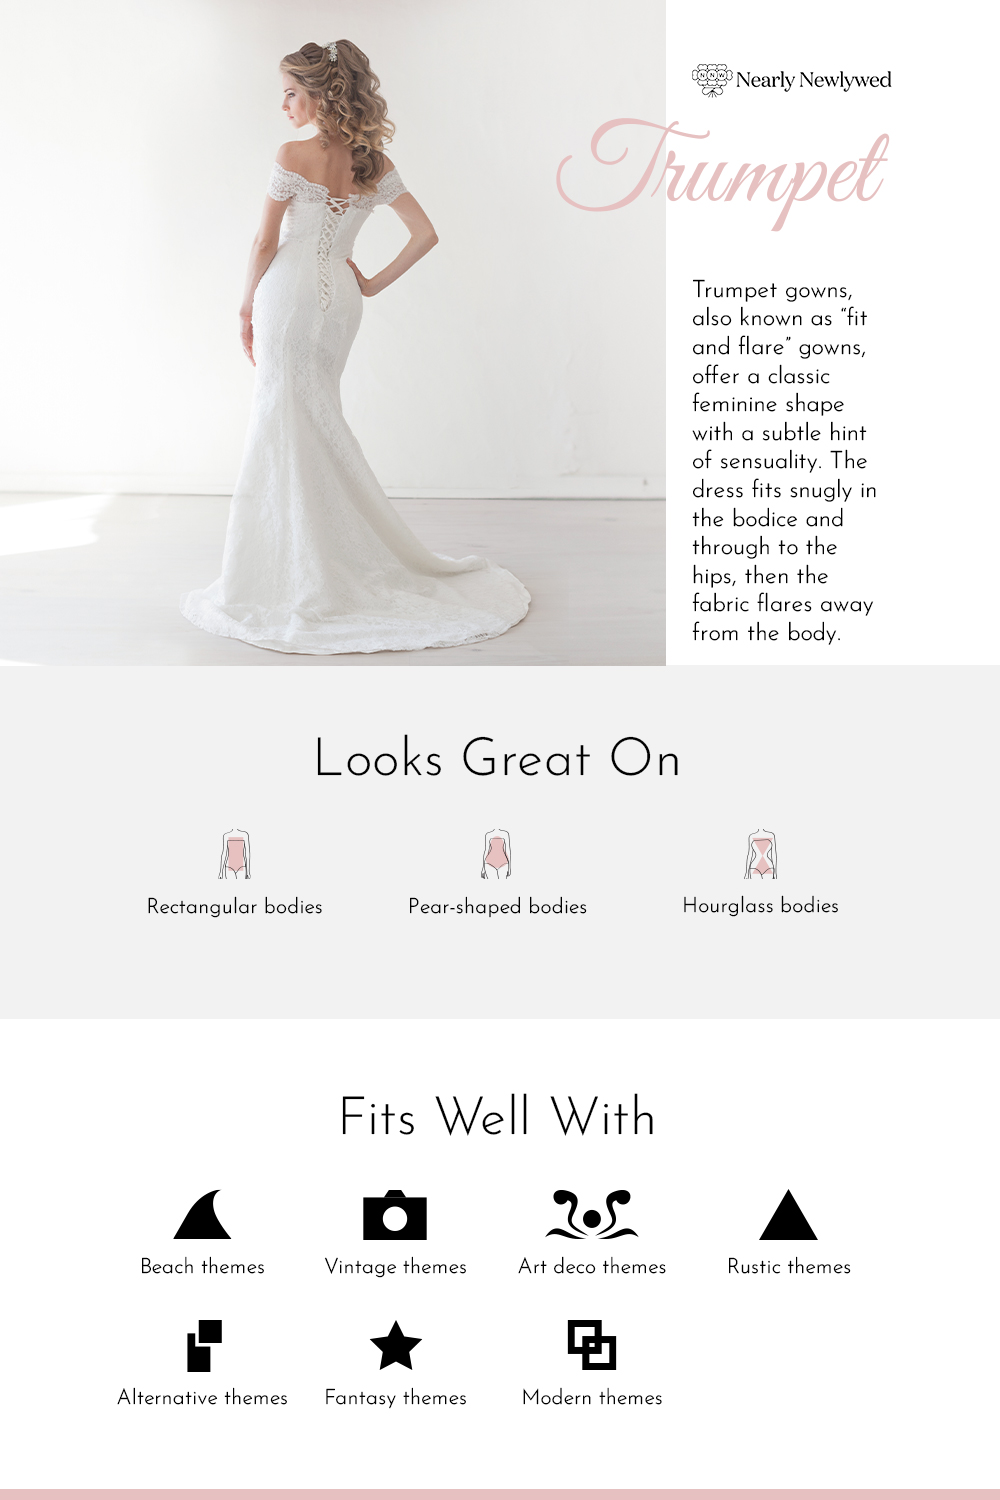 Trumpet Wedding Dress Silhouette Infographic